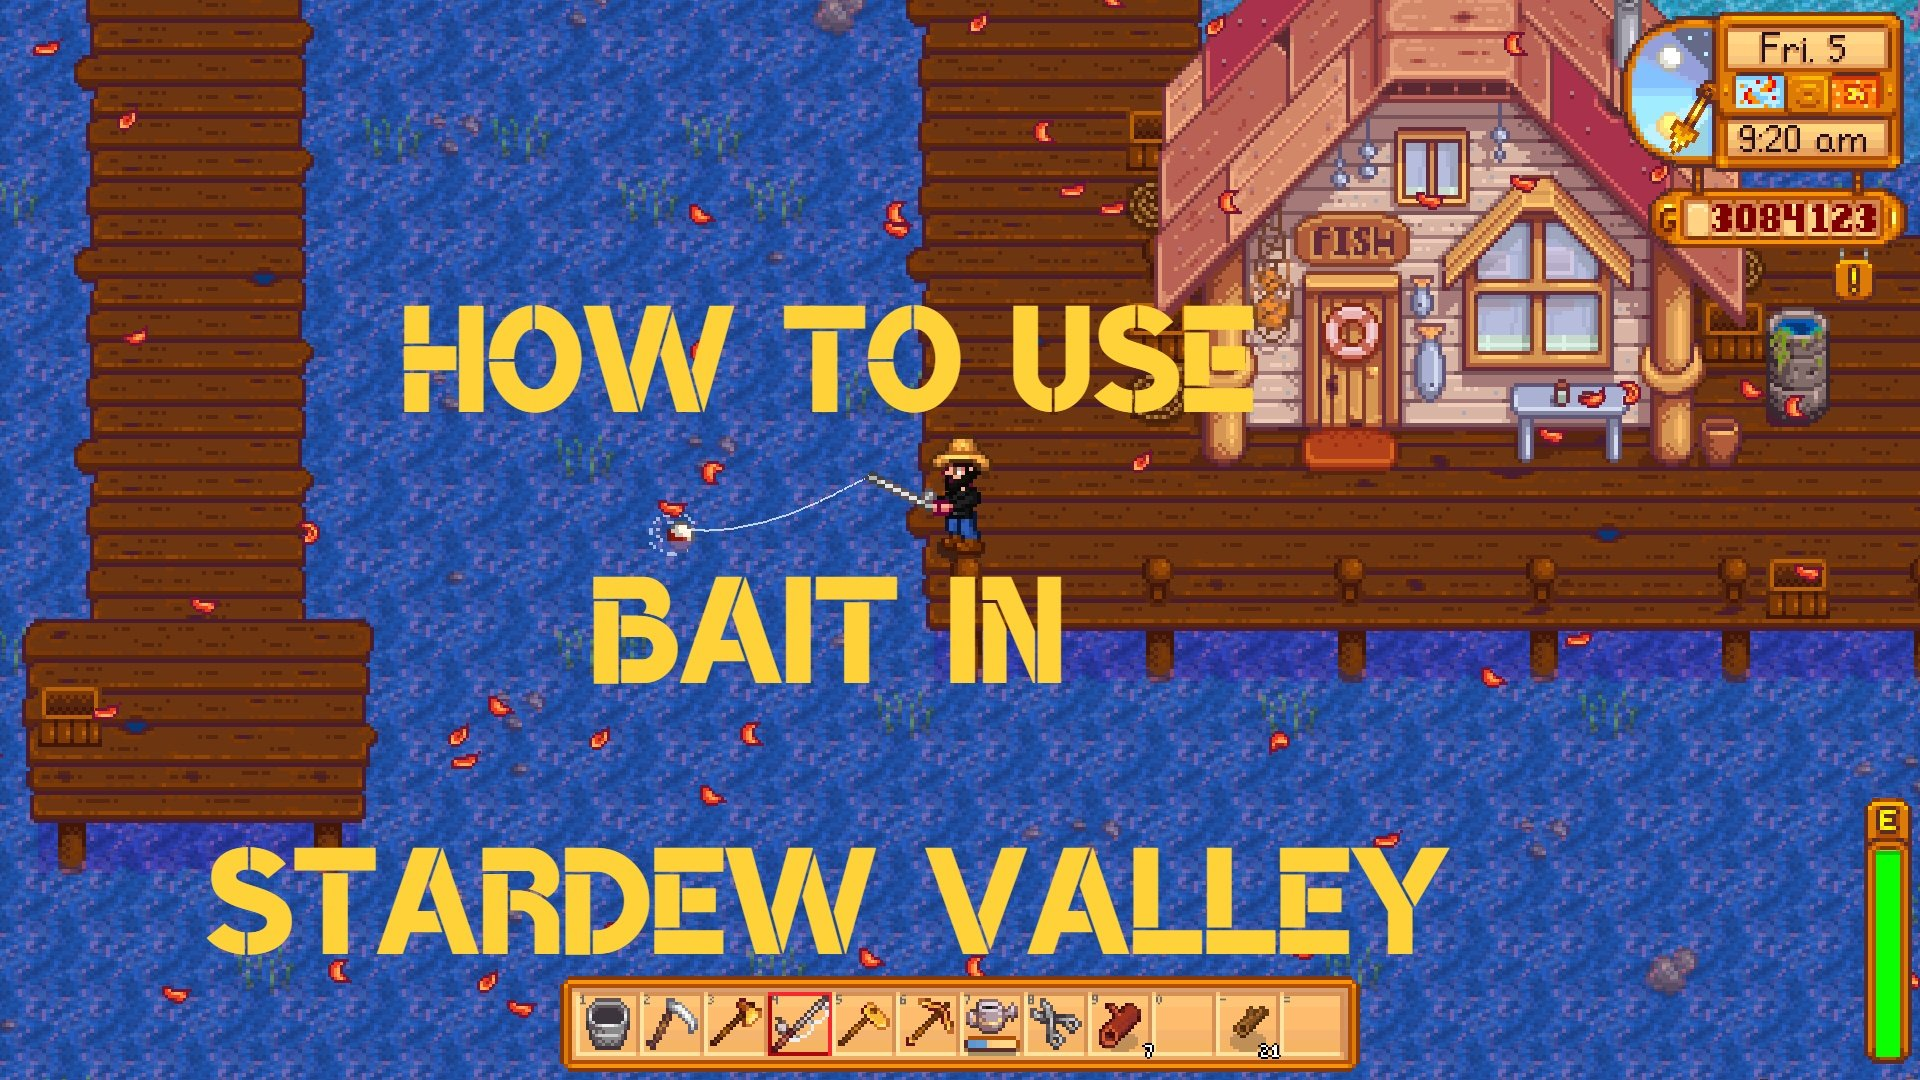 How to Use Bait in Stardew Valley